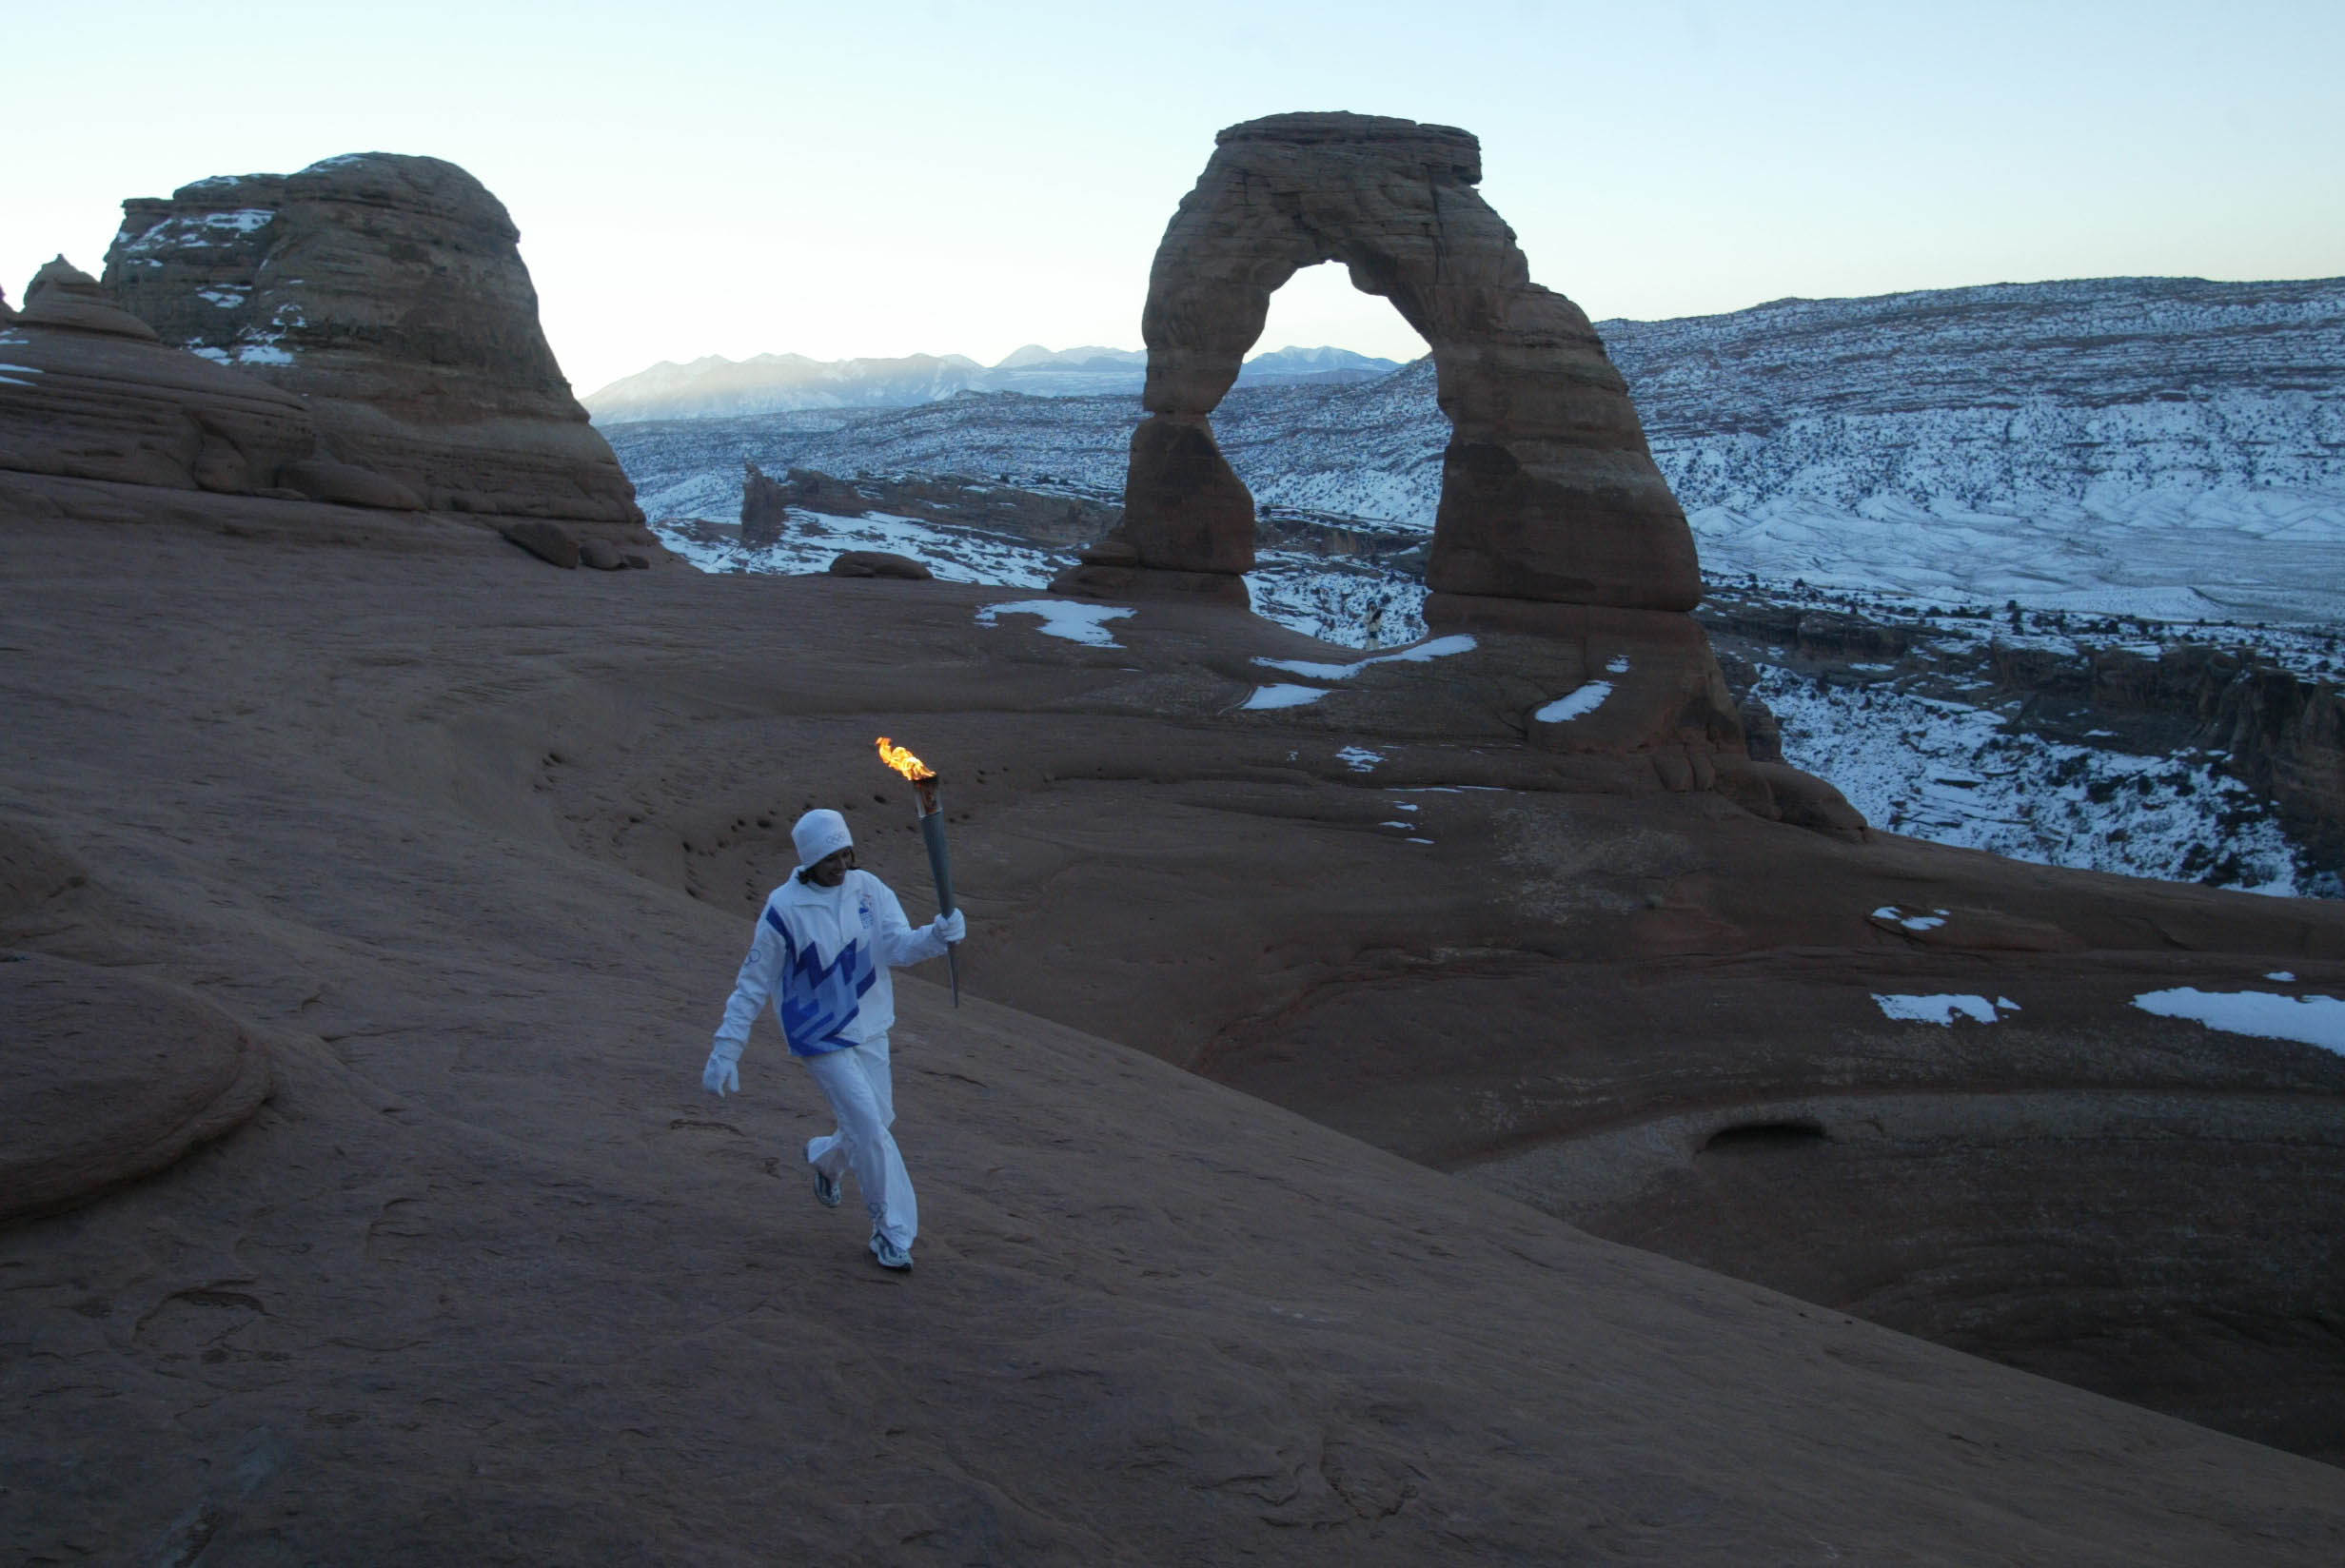 Native American Stephanie Laree Spann walks the Olympic Torch past Delicate Arch in Arches National Park, near Moab, Utah on Feb. 2, 2002.